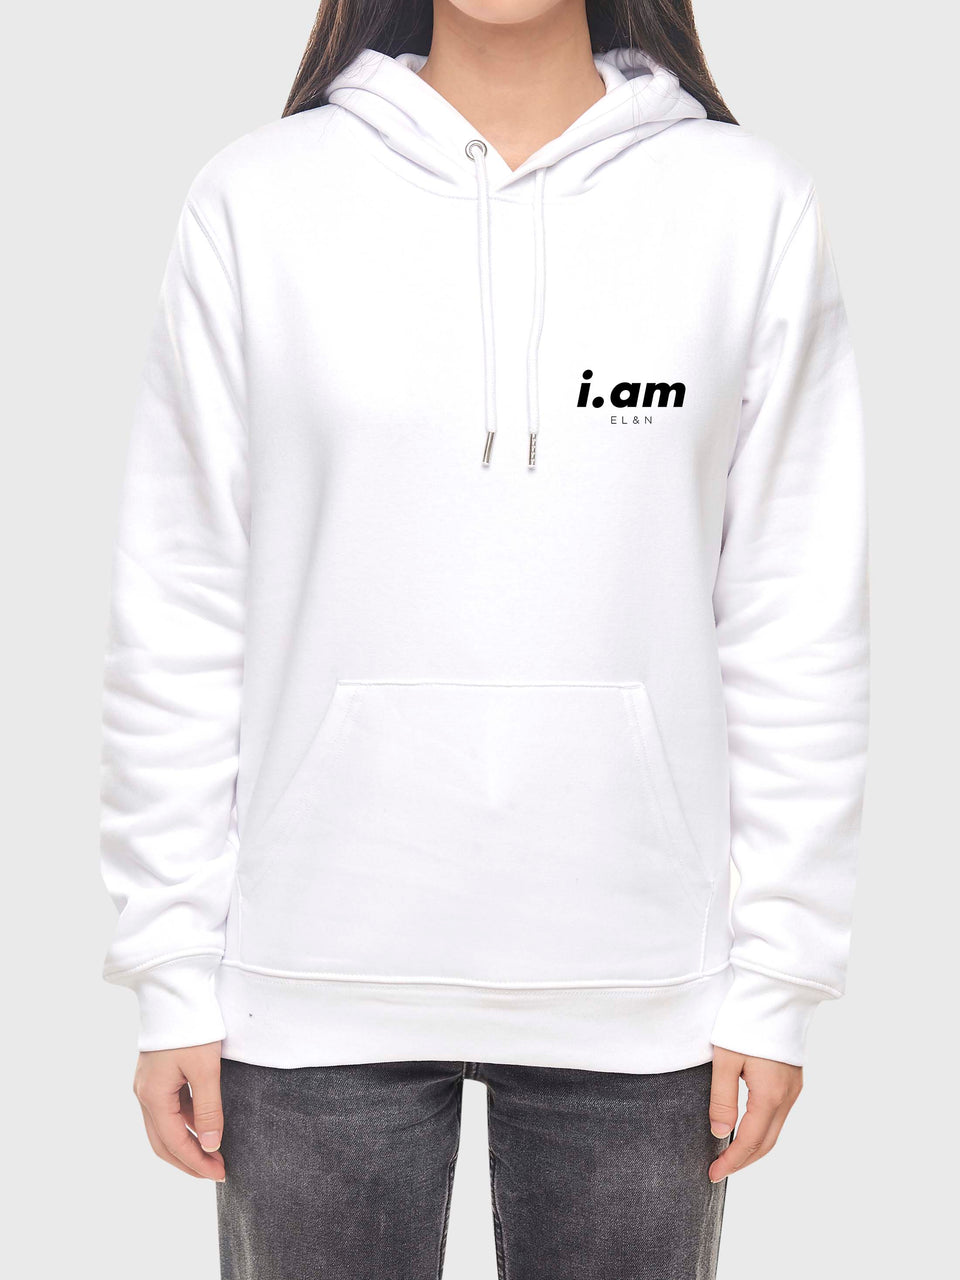 I am who I am - White - unisex pull over hoodie